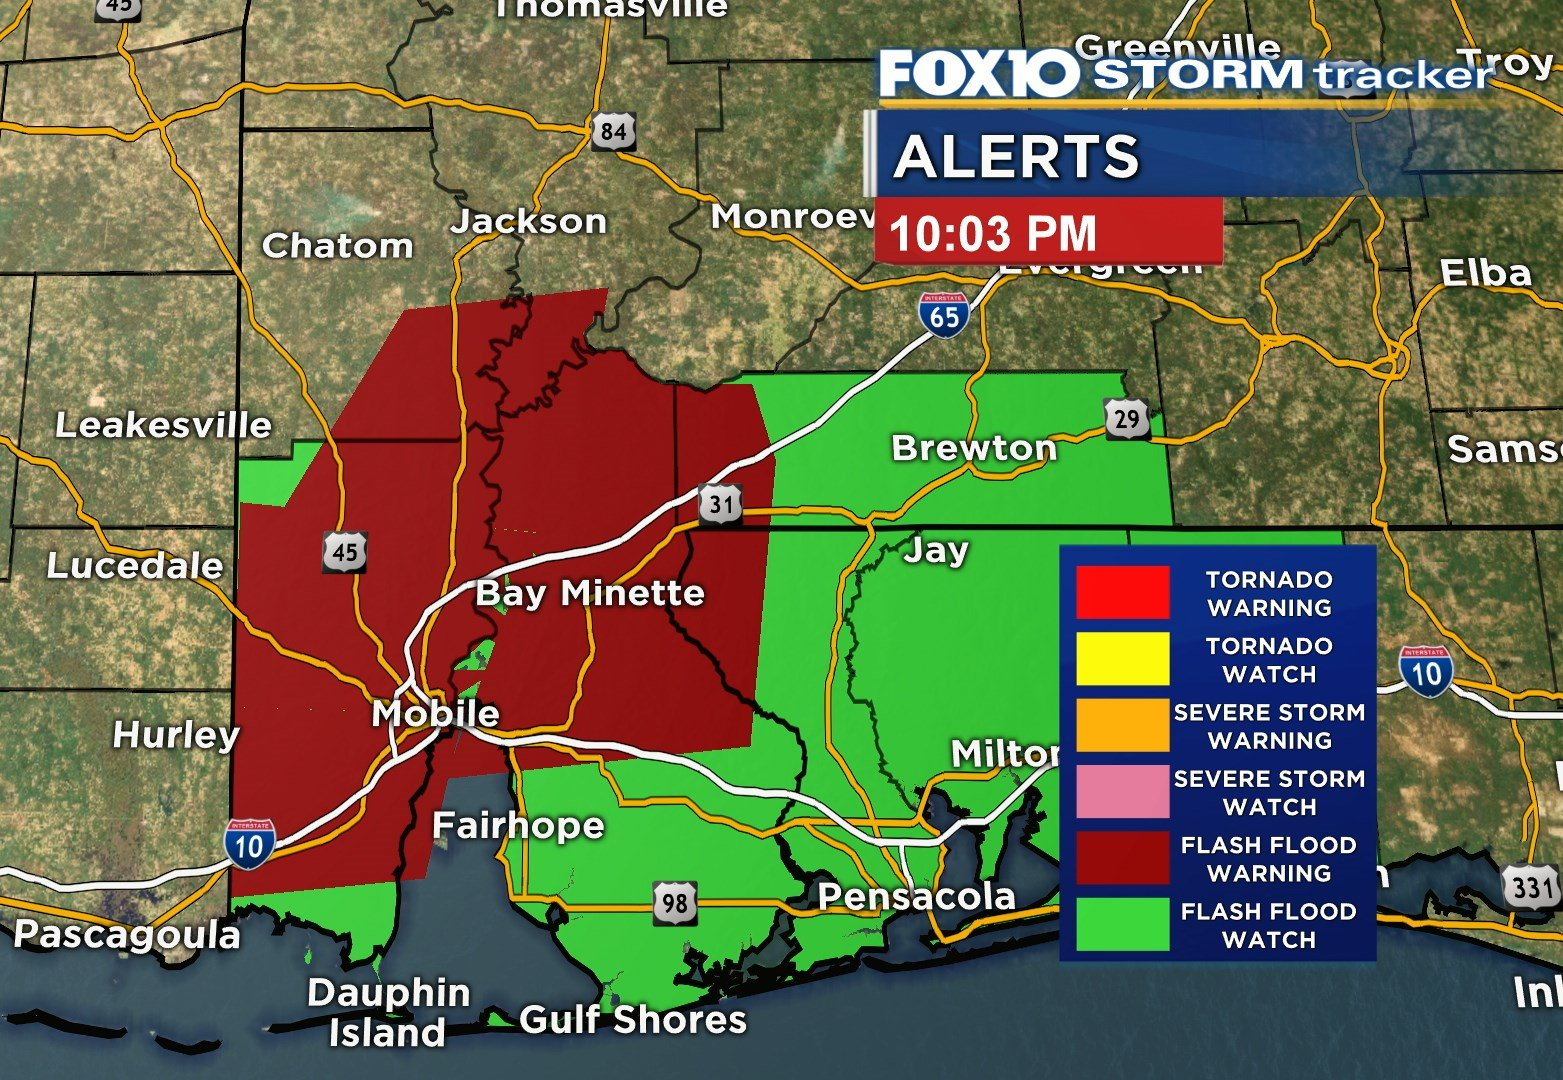 Alabama mobile county saraland - Flash Flood Warnings Were Issued In Parts Of Southwest Alabama Saturday Night May 20